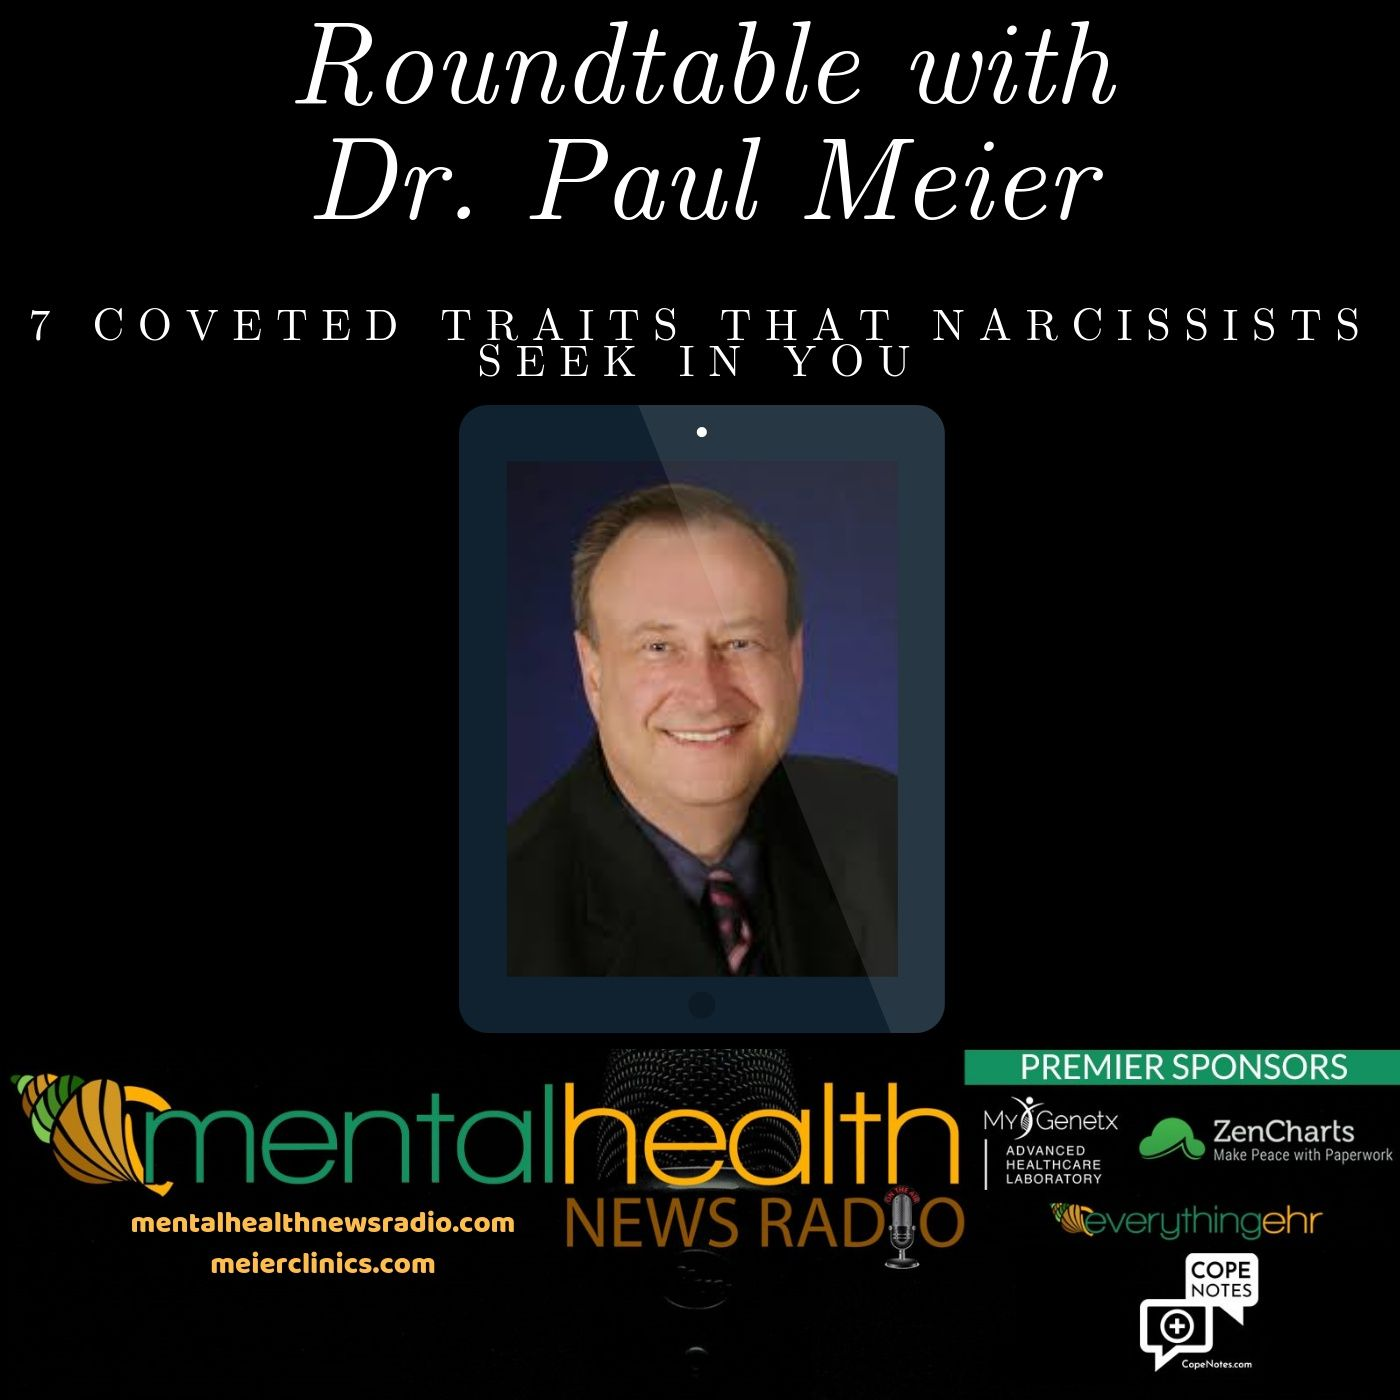 Mental Health News Radio - Roundtable with Dr. Paul Meier: 7 Coveted Traits Narcissists Seek In You